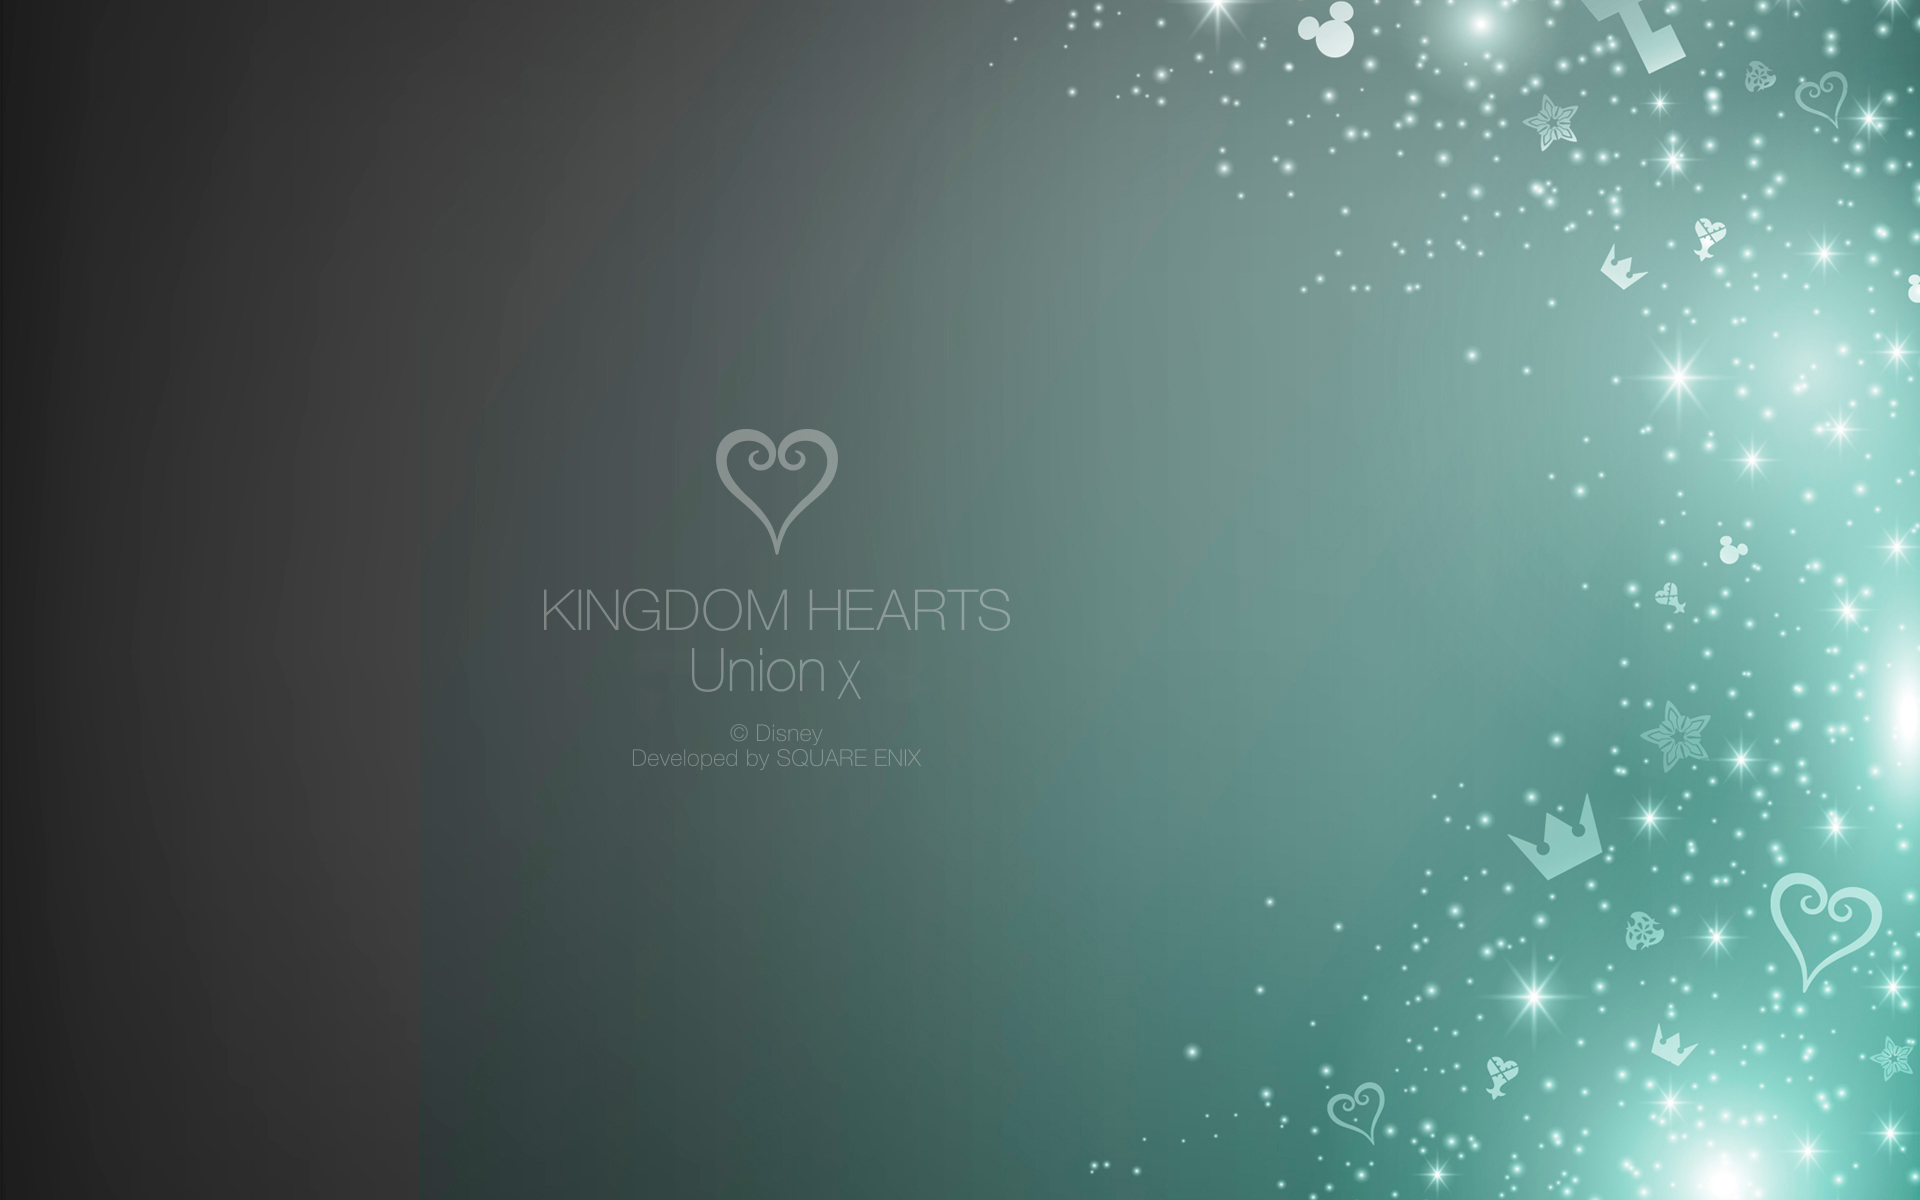 Kingdom Hearts Union X Wallpapers. Android. iPhone